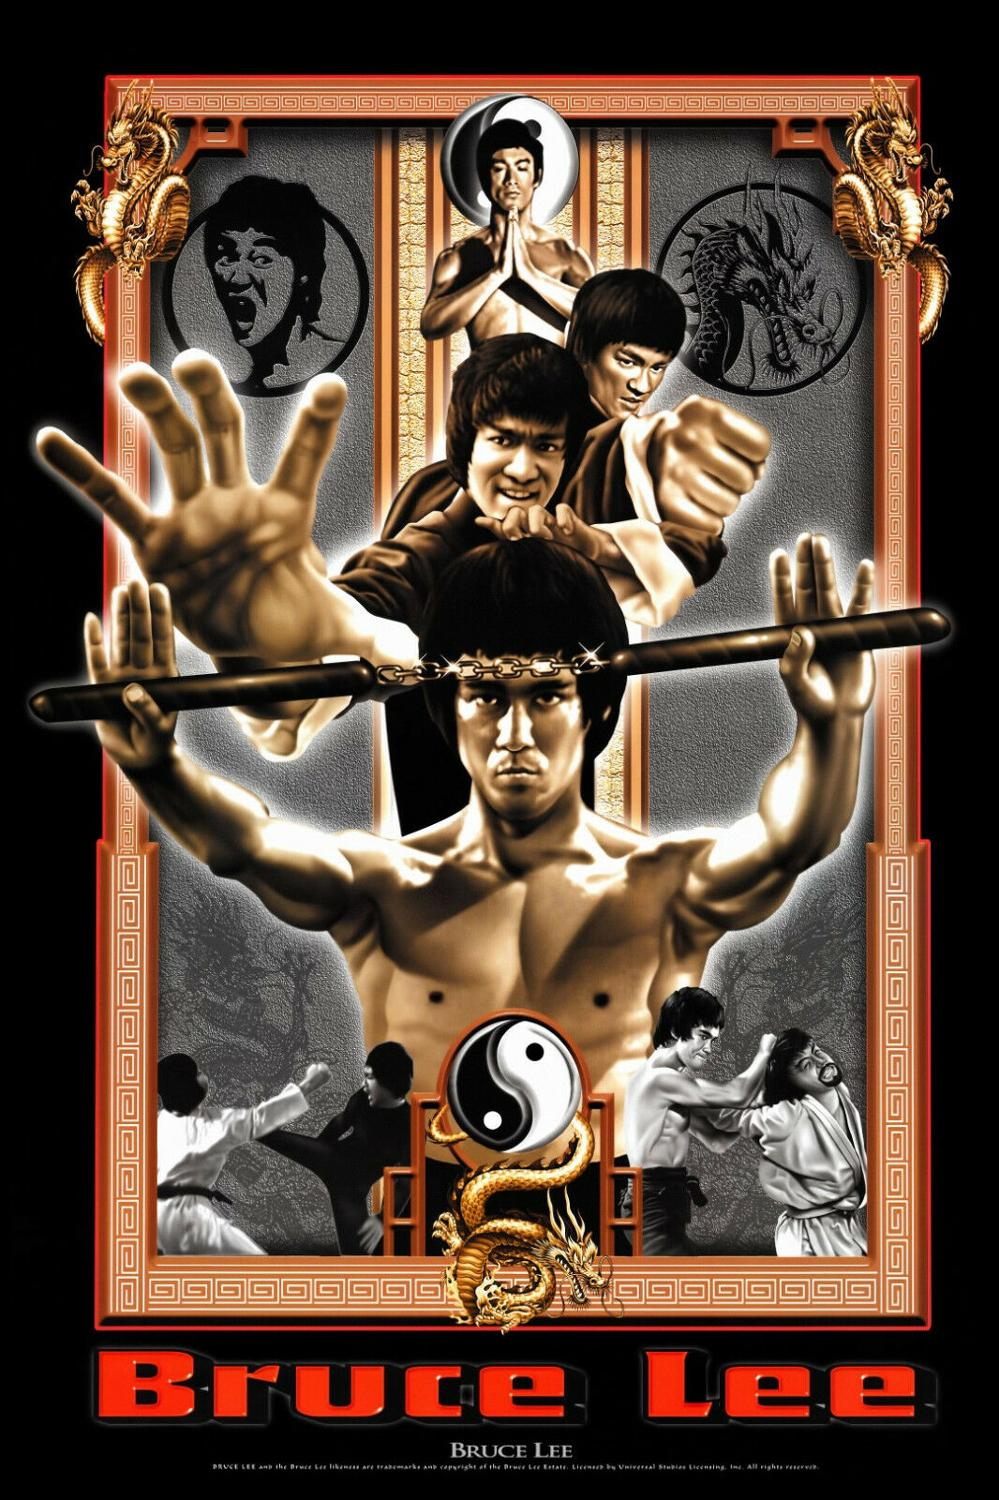 Enter The Dragon Classic Movie Silk Poster Bruce Lee Wall Art Canvas Print 24x36